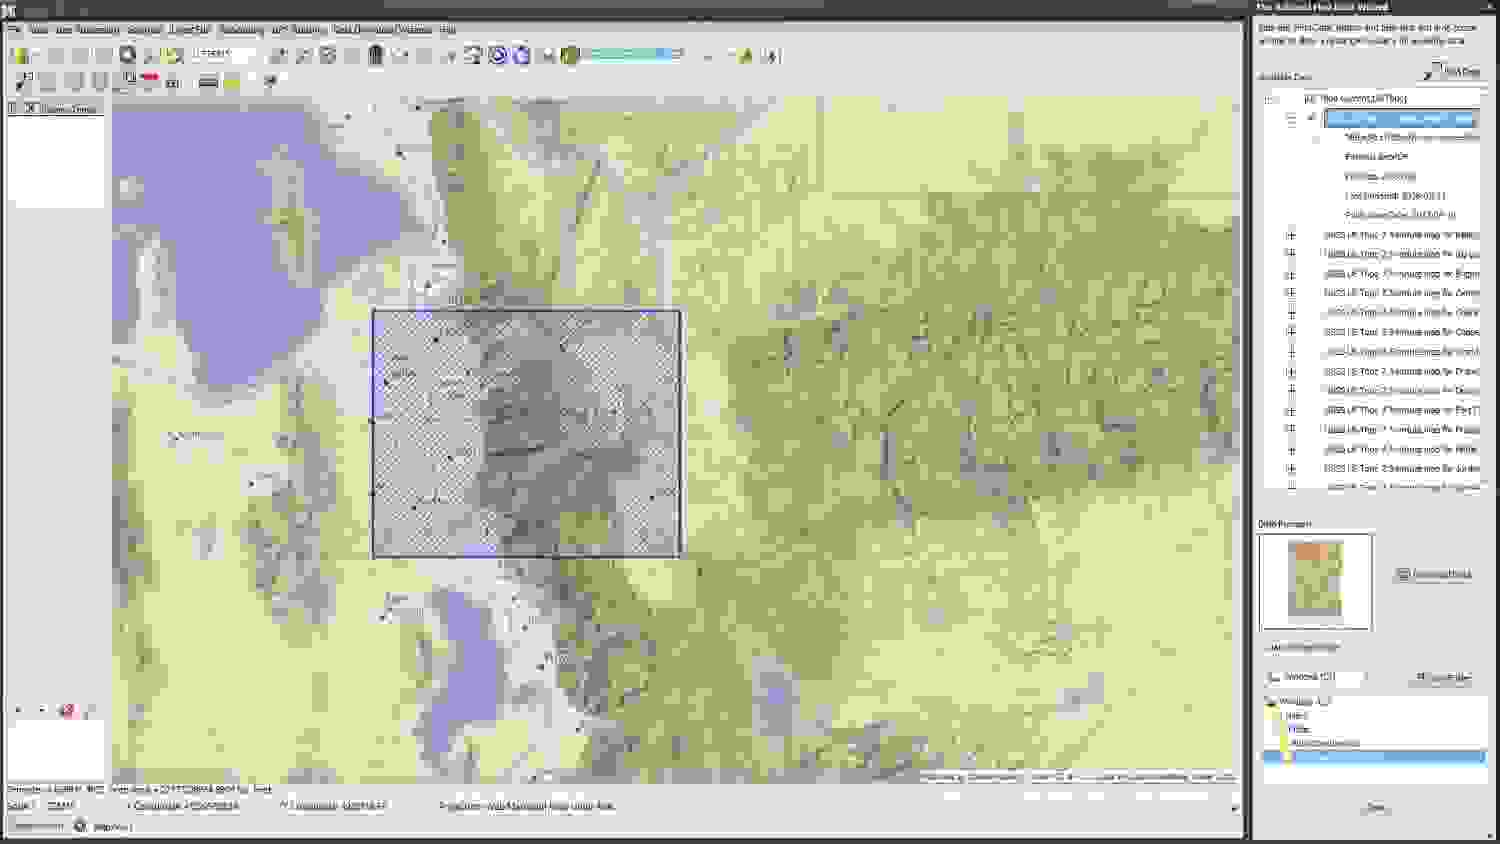 USGS Data Wizard in Simple GIS Client